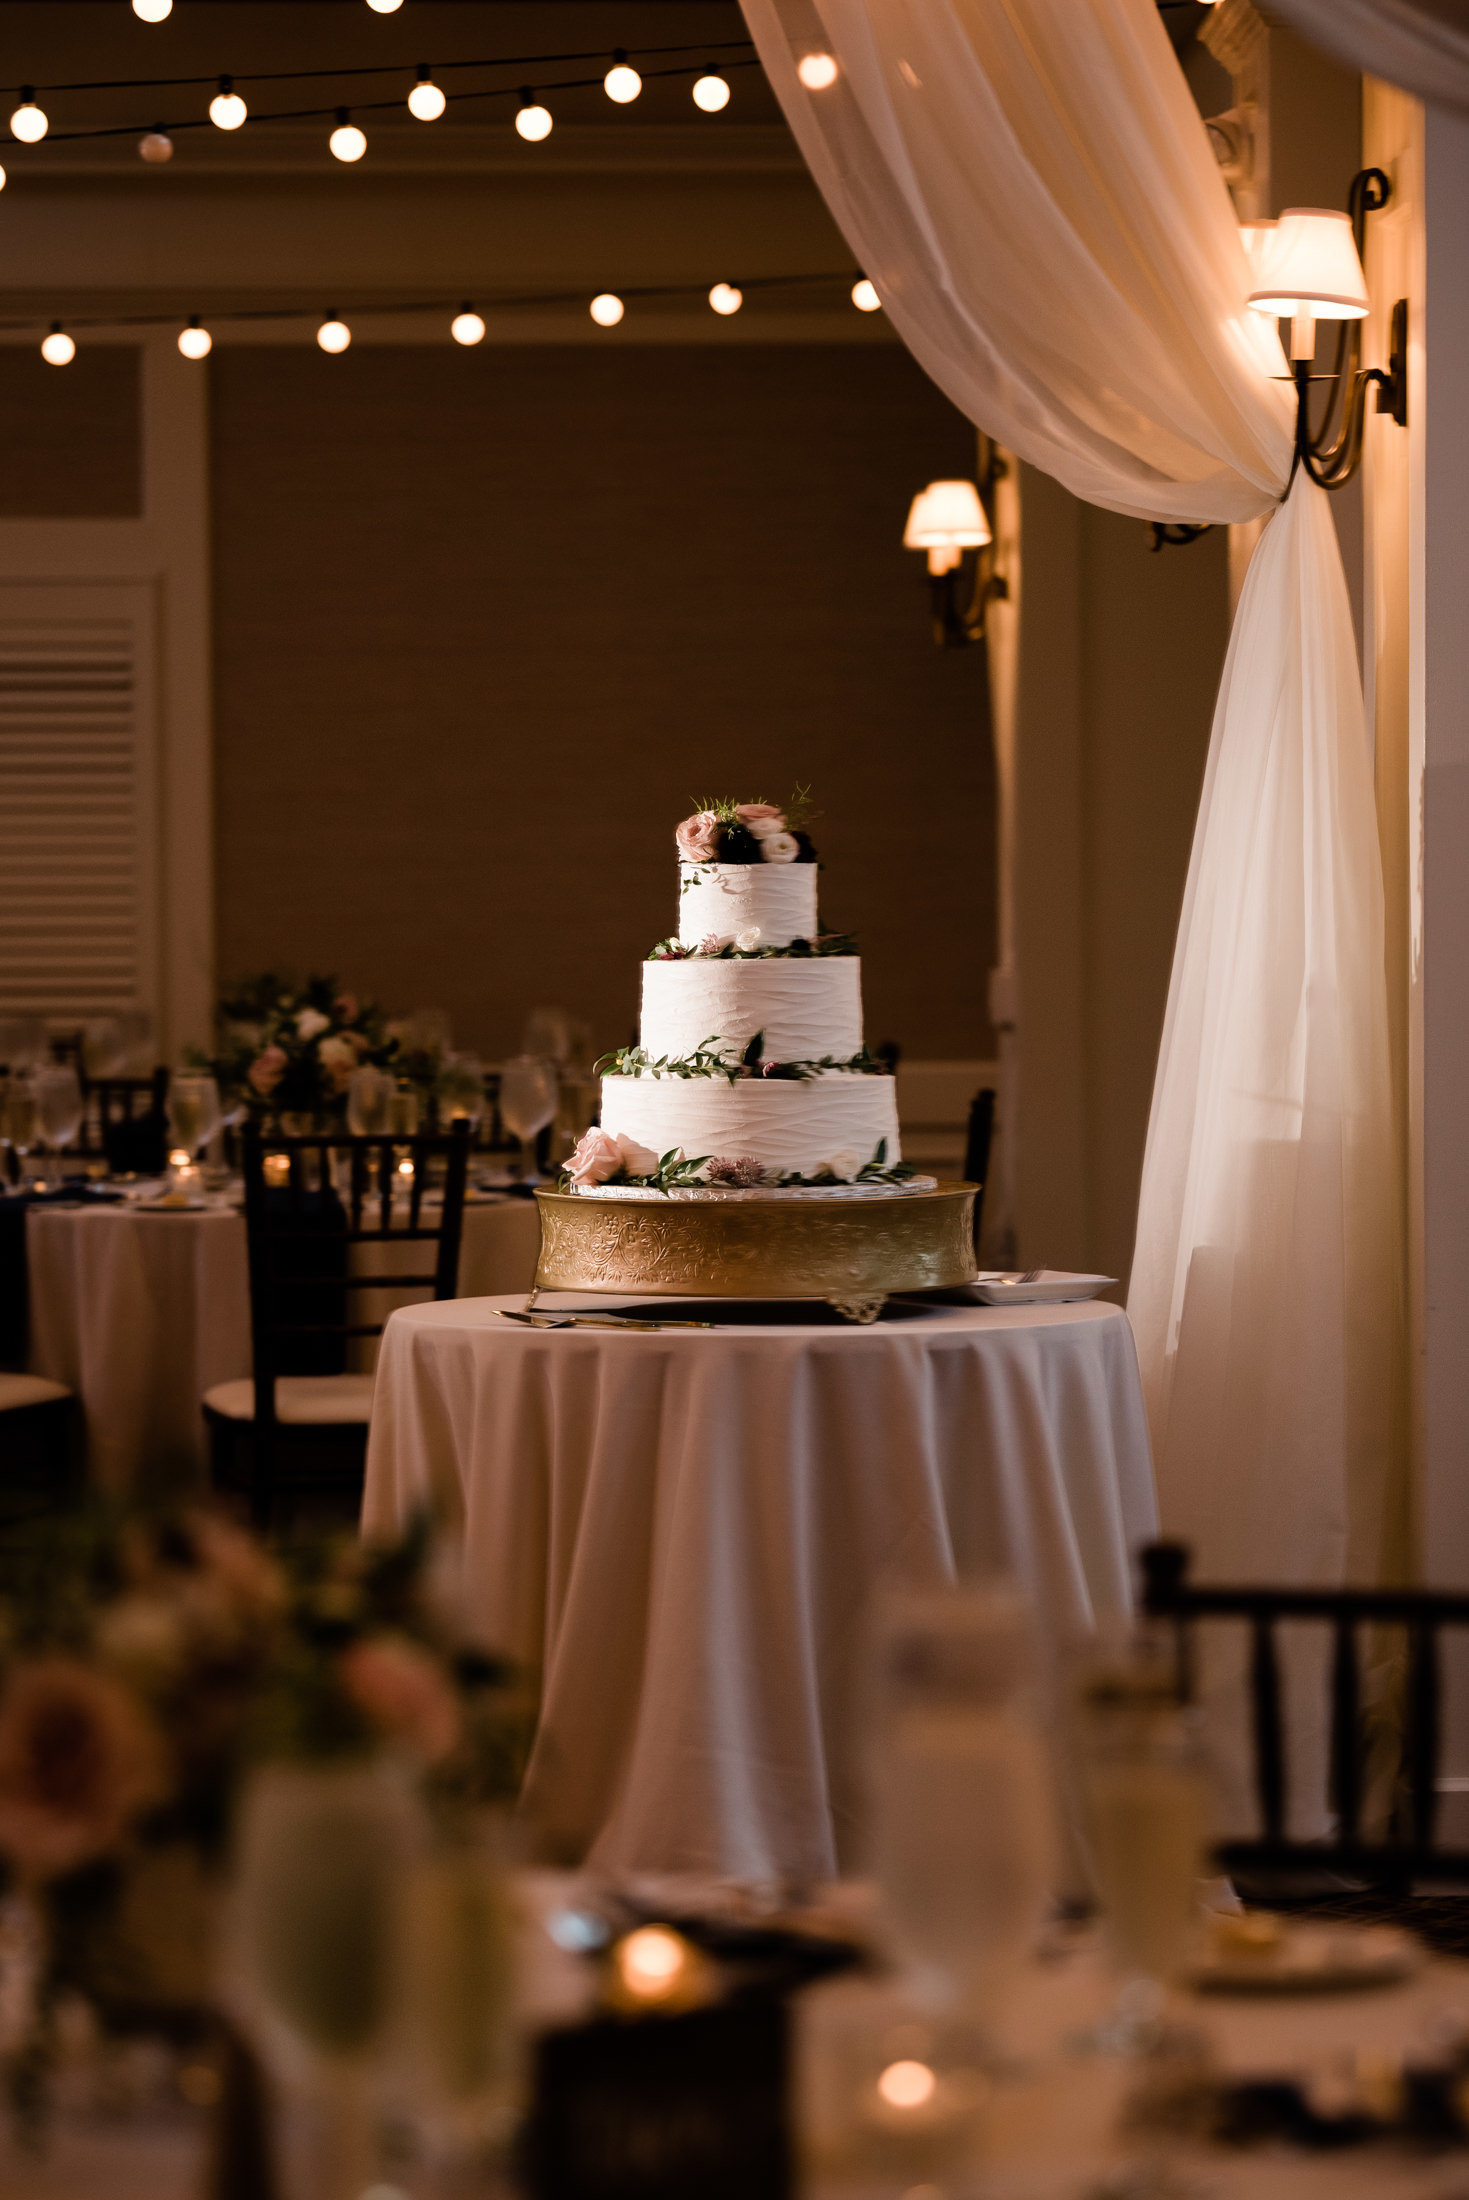 A wedding cake and reception decor shot at a Pavilion at Pinehills wedding